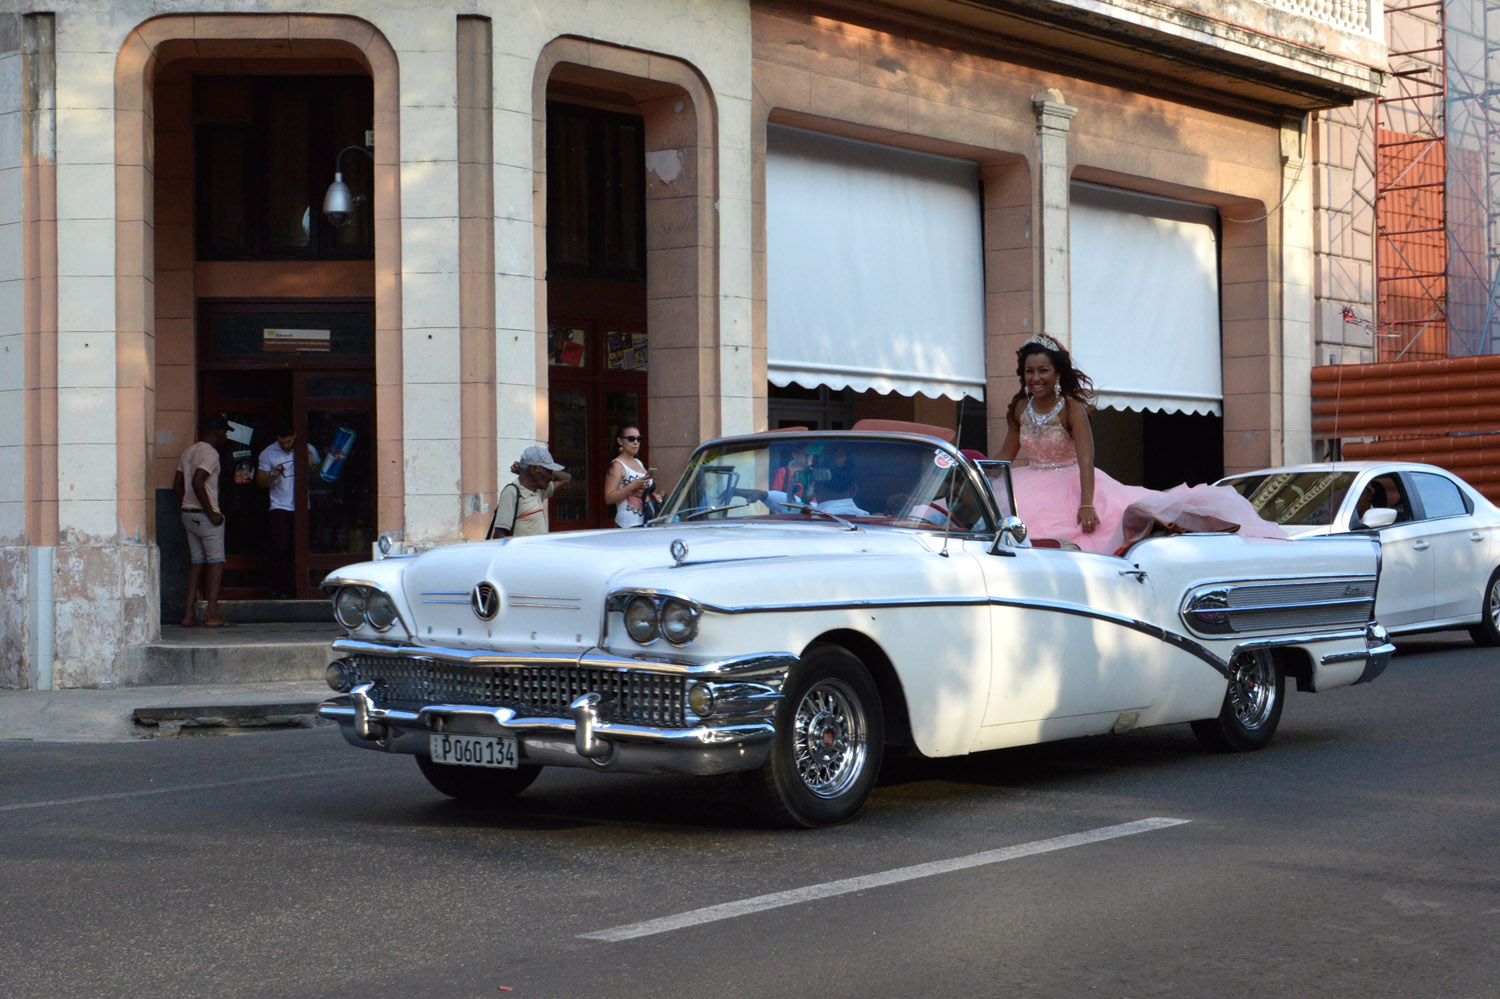 Cuba-Havana-Classic-Car-Celebration-Woman.jpg